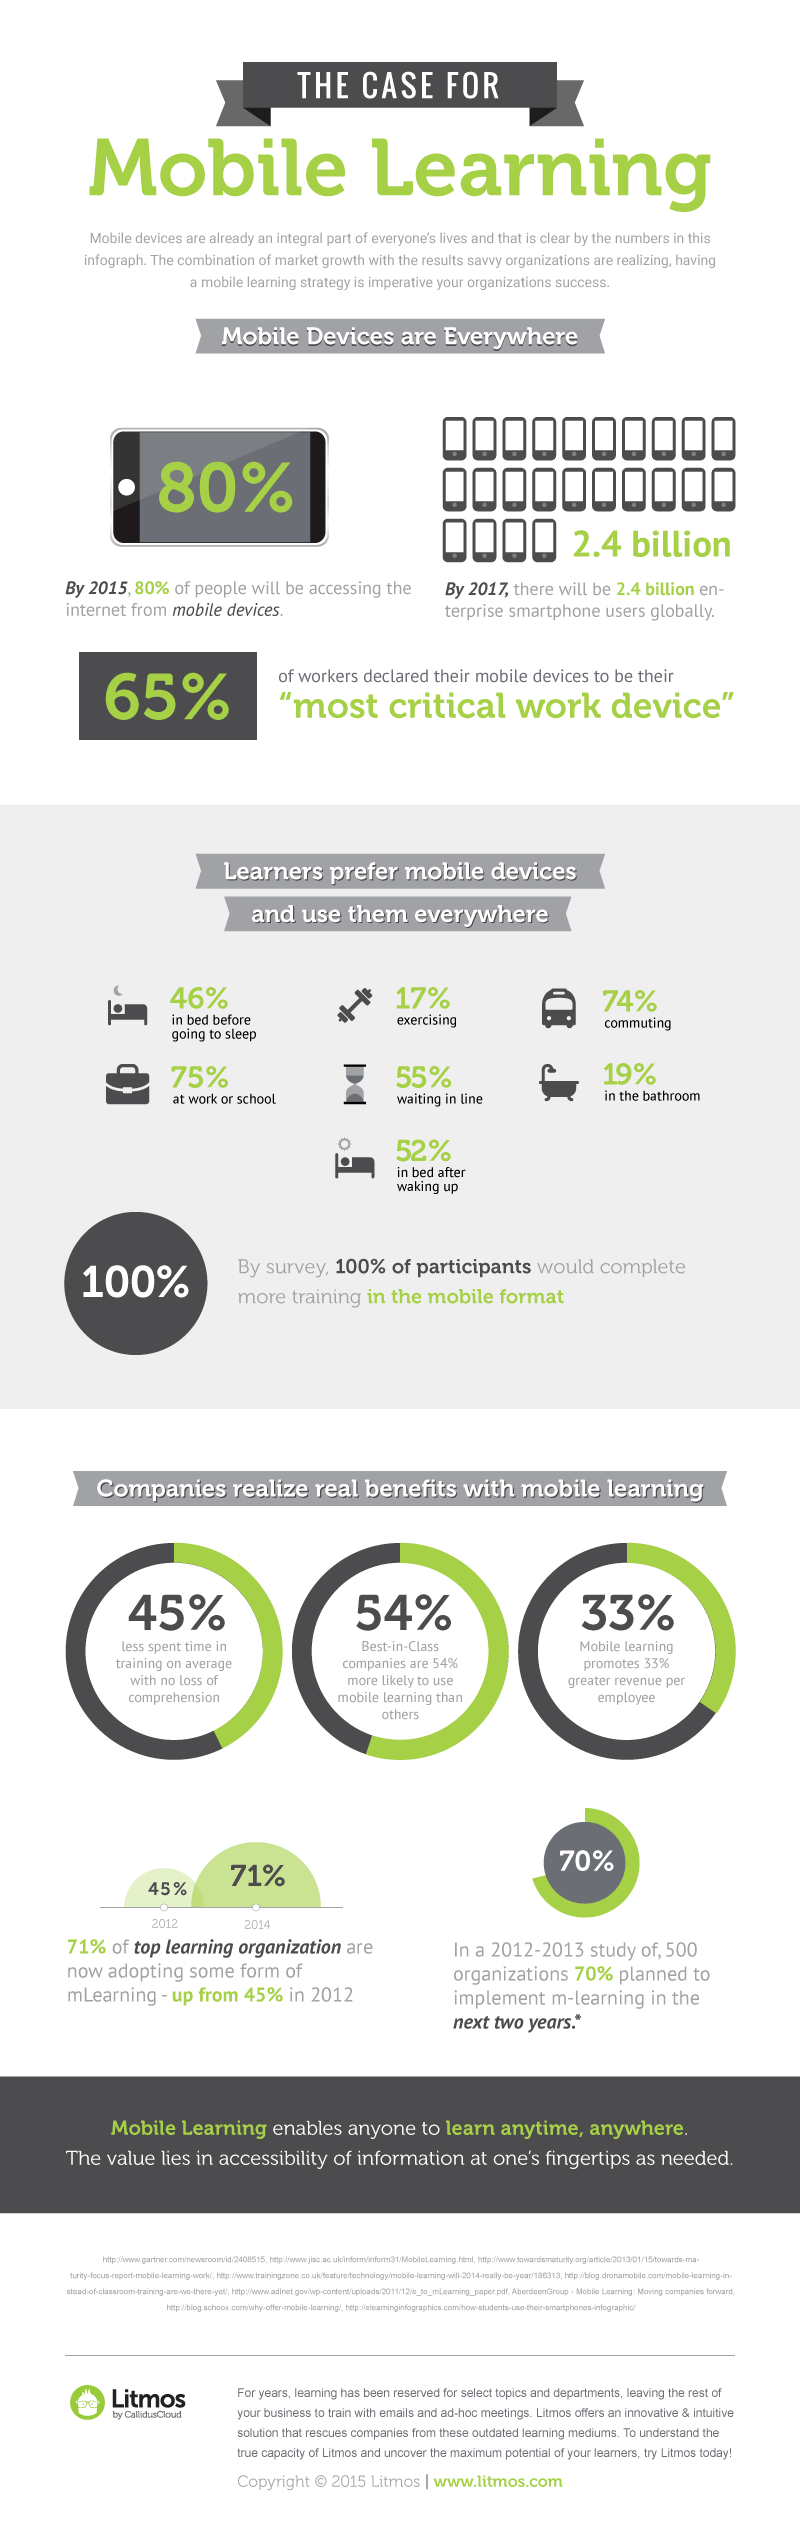 The Case for Mobile Learning Infographic